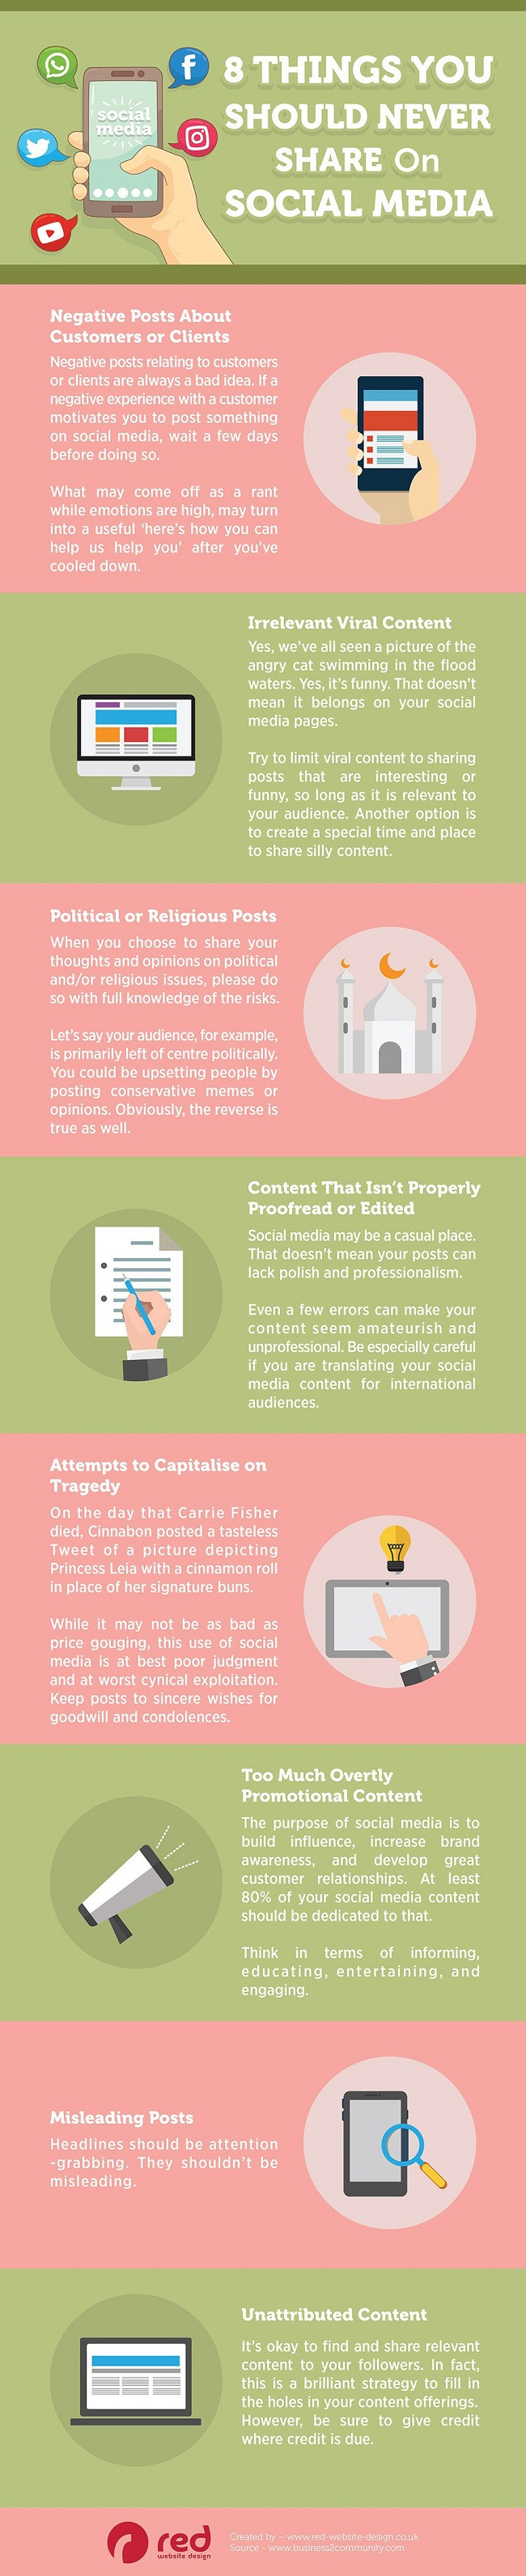 8 Things You Should Never Share on Social Media [Infographic]